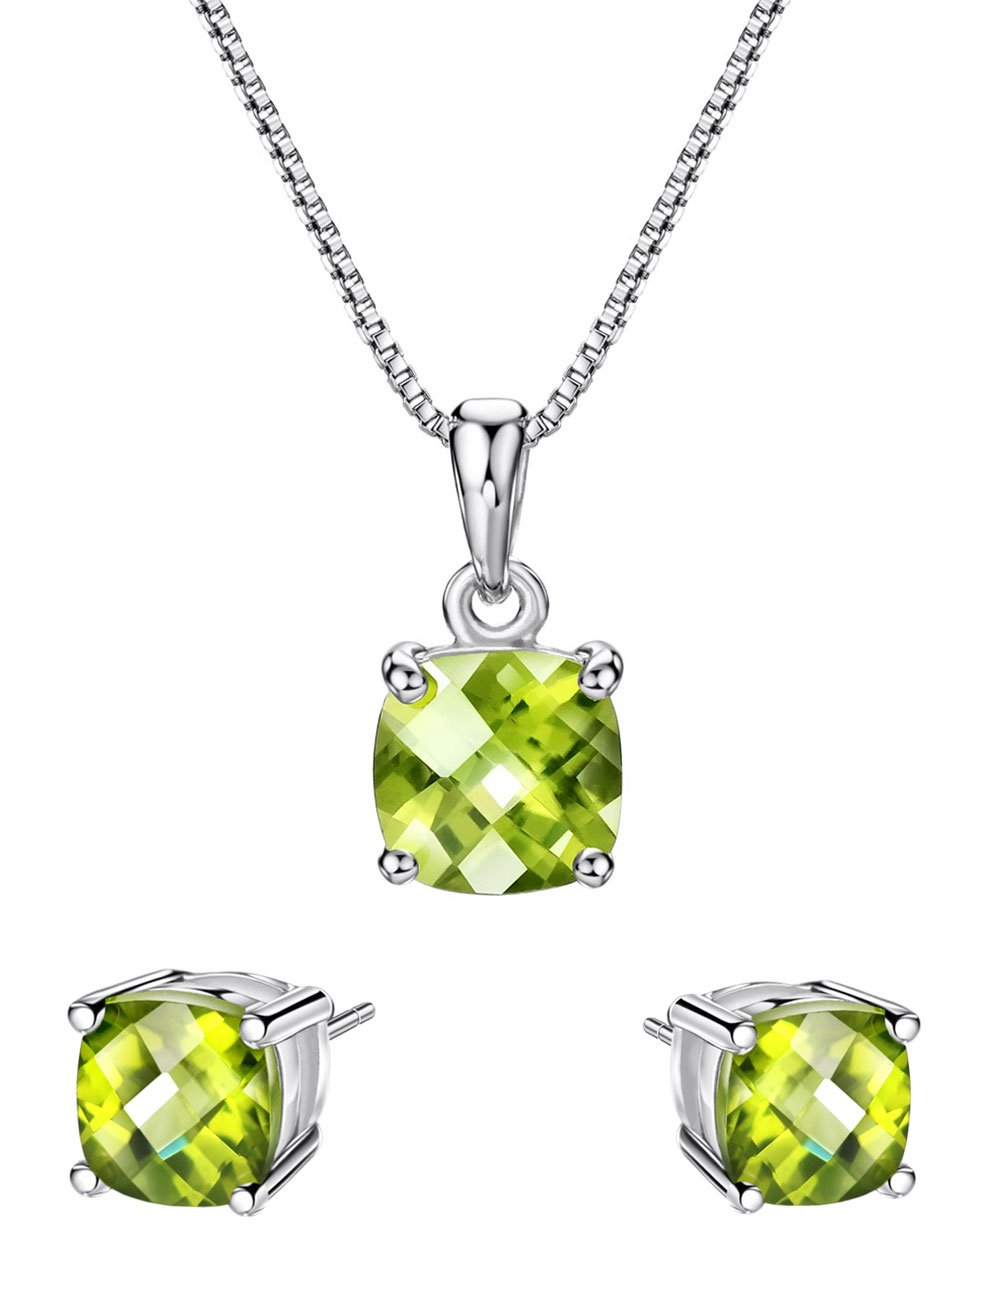 Mints 2ct Peridot Jewelry Set Sterling Silver Pendant Necklace Stud Earrings August Birthstone Gemstone for Women